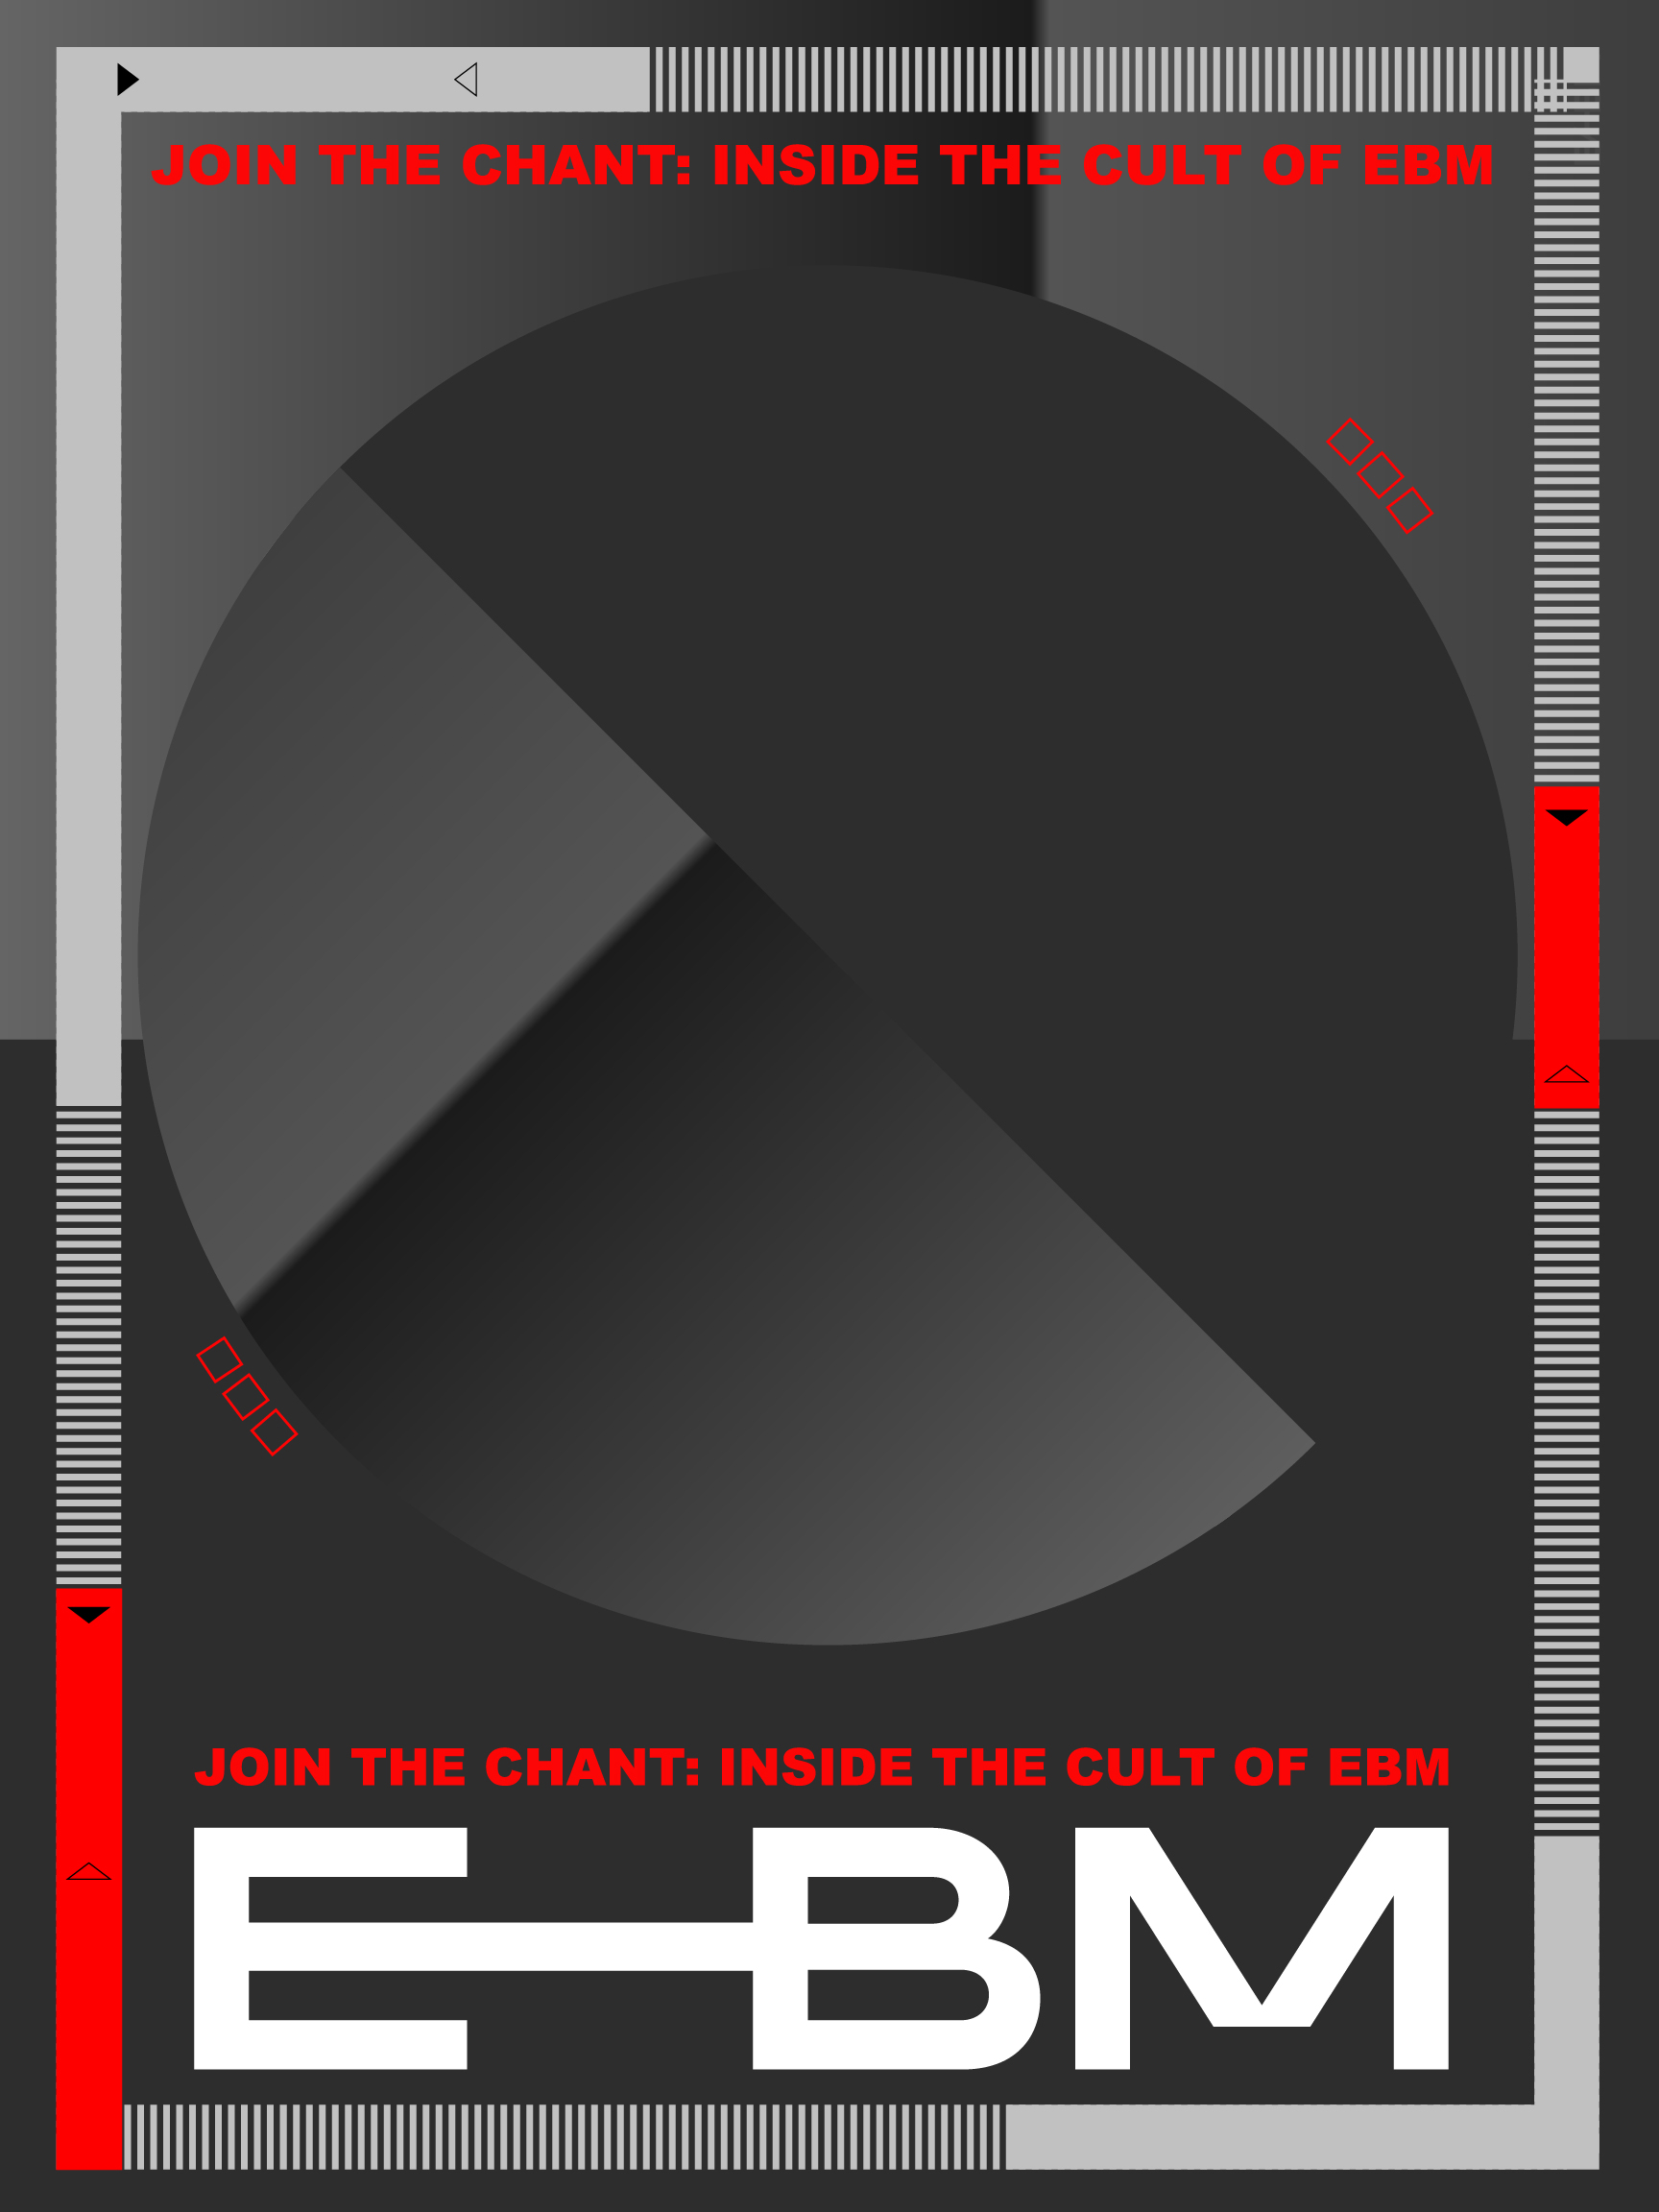 RA: Join in the chant: Inside the cult of EBM